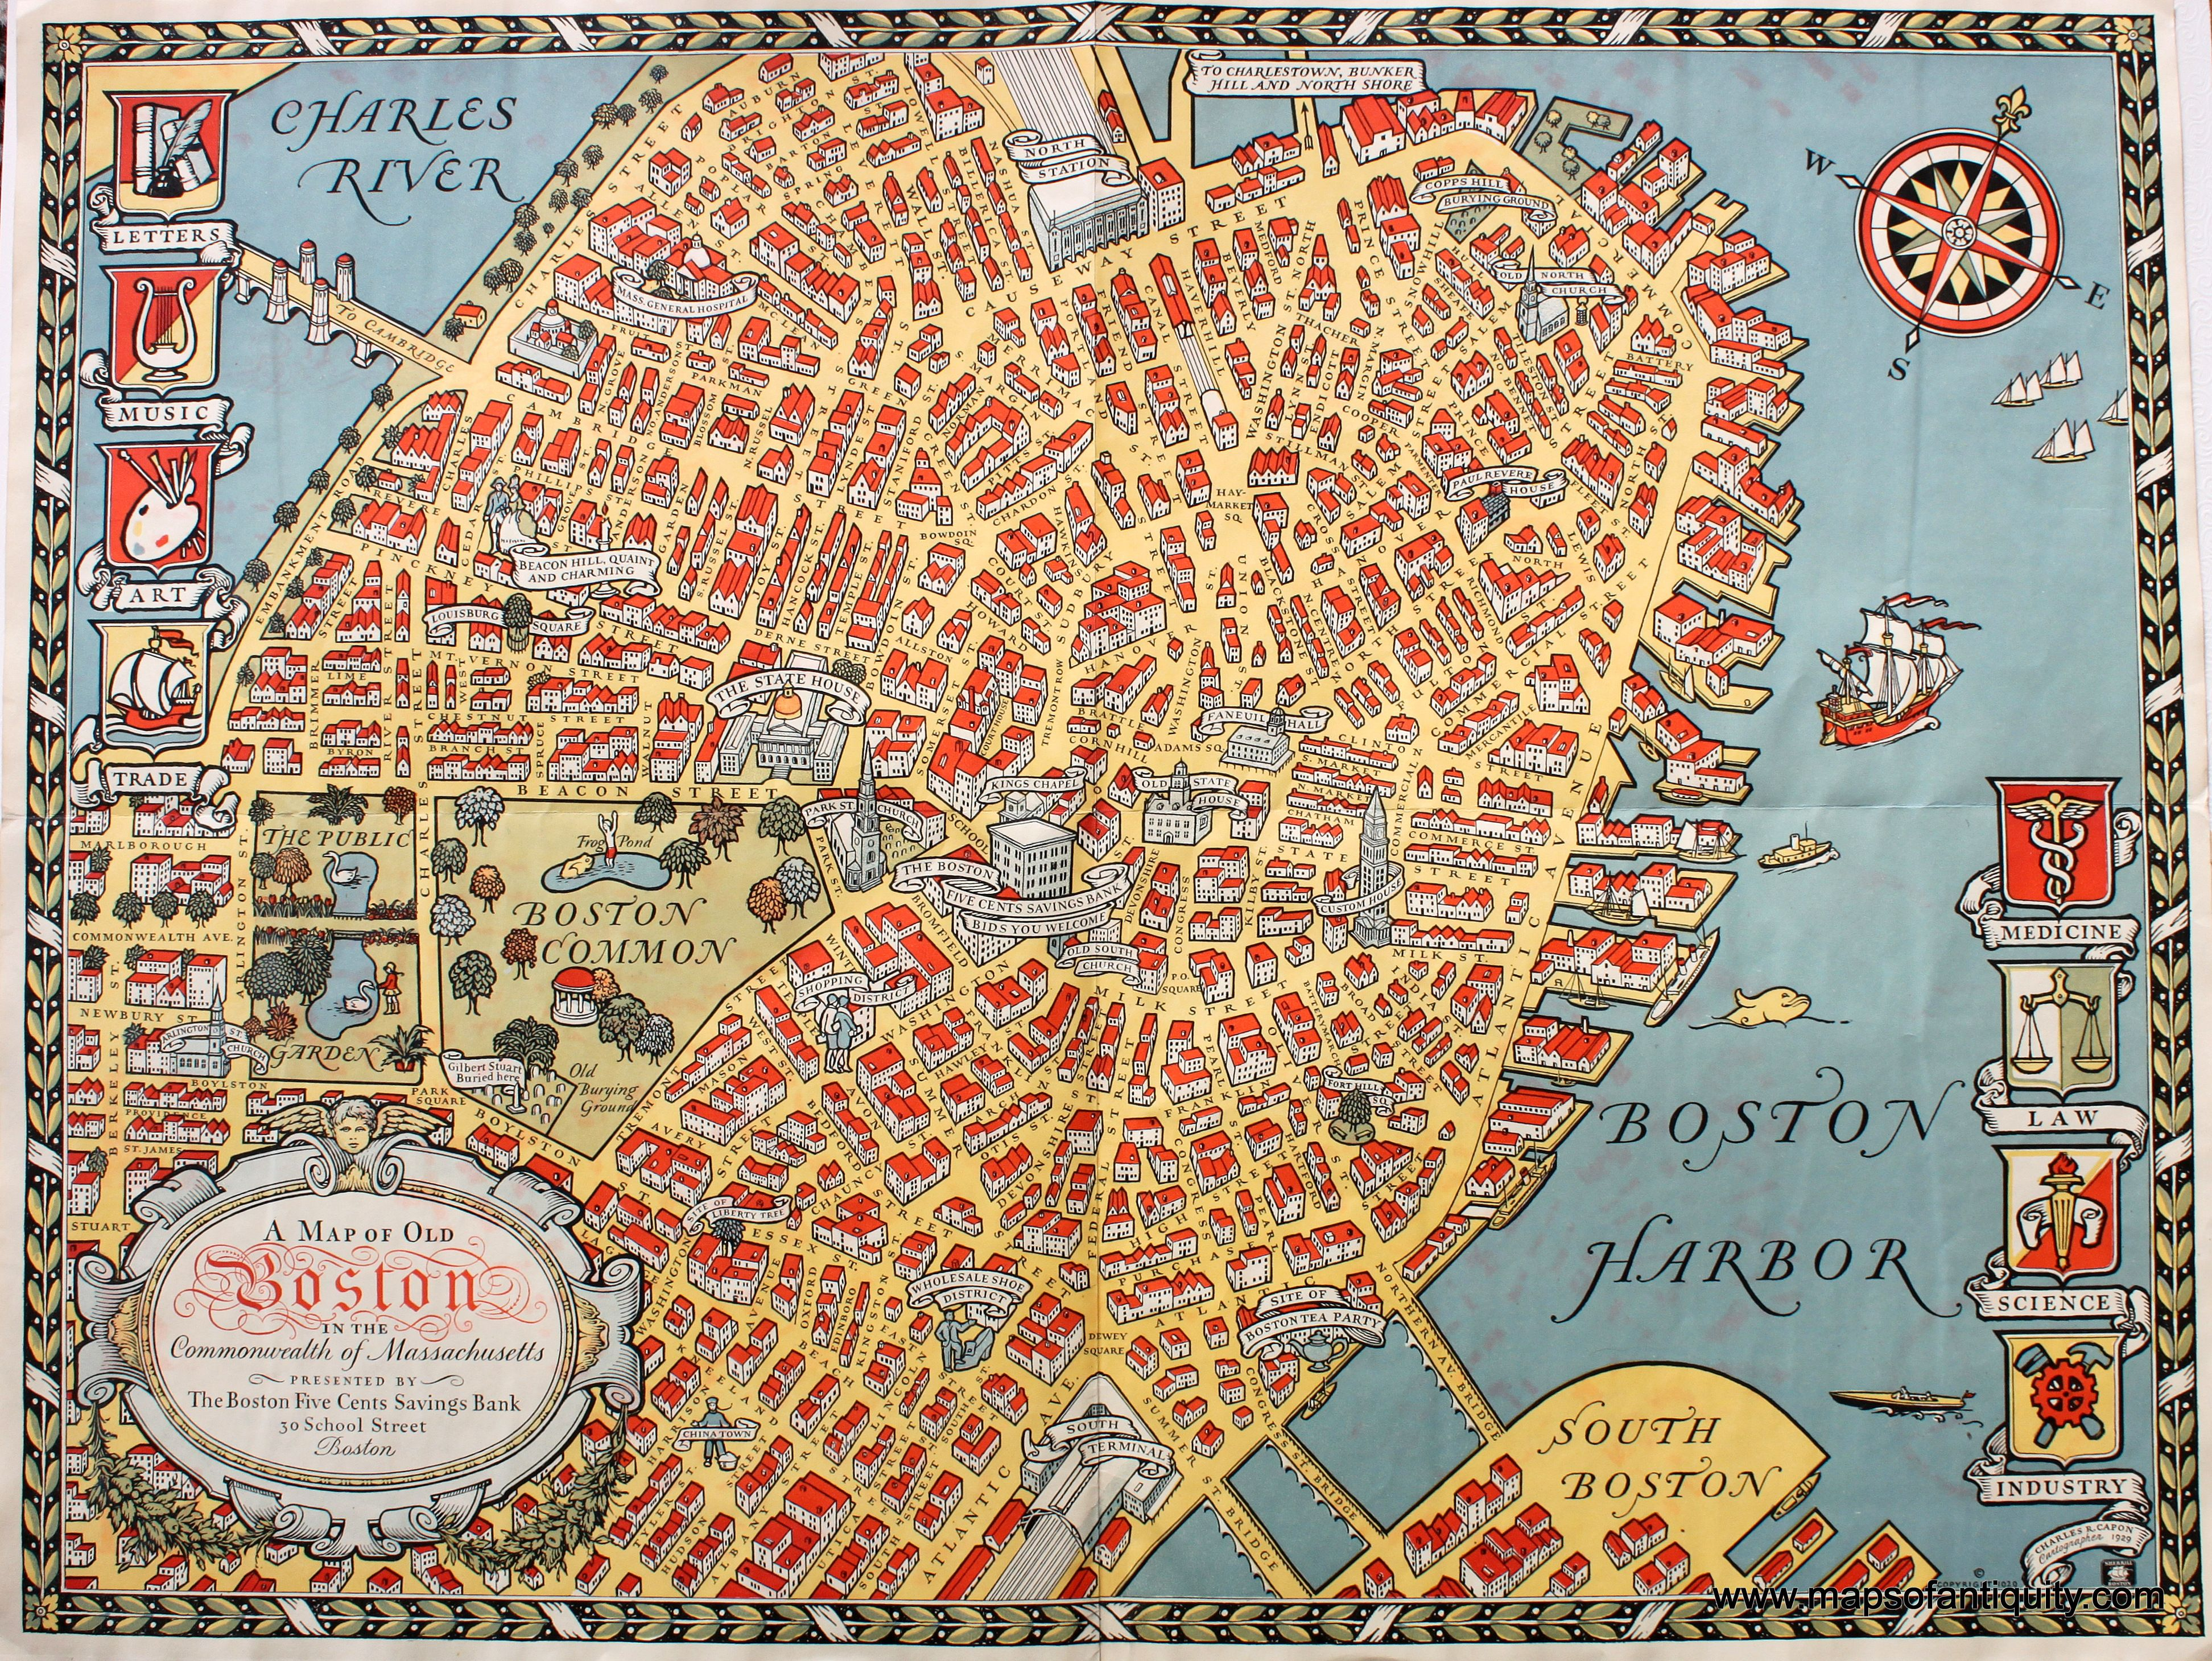 A Map of Old Boston in the monwealth of Massachusetts Colorful